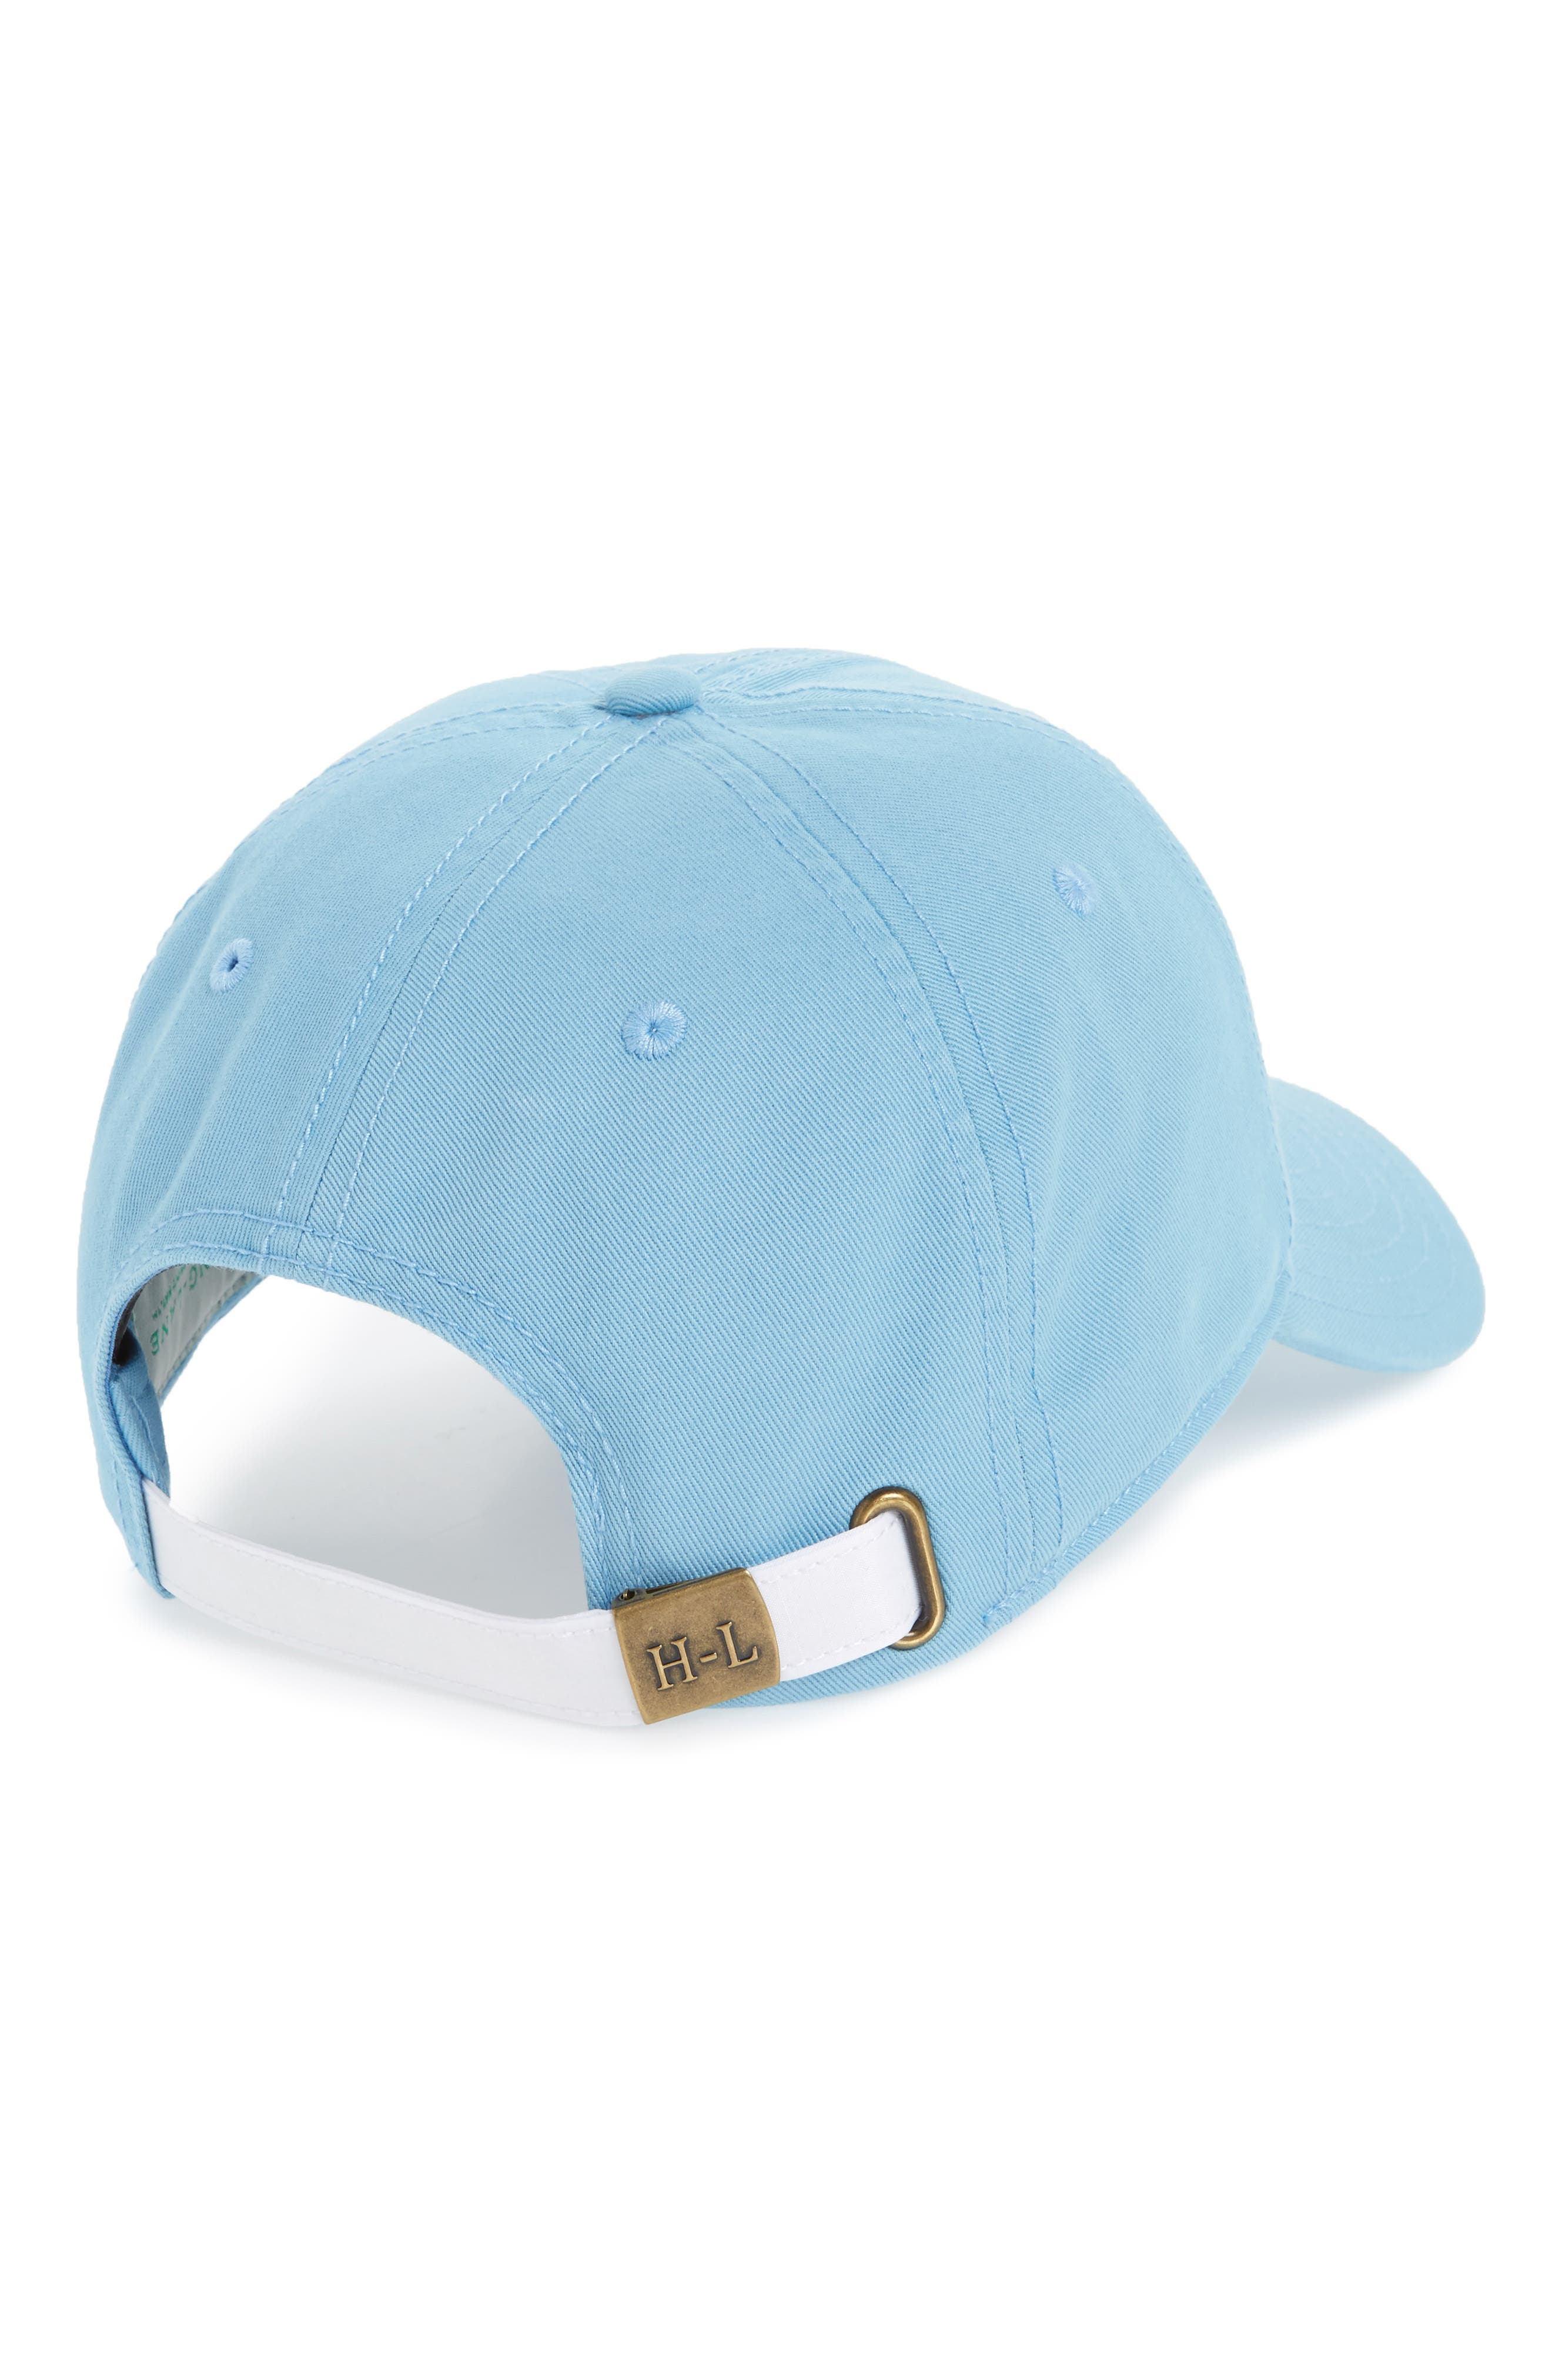 Lonely Heart Cap,                             Alternate thumbnail 2, color,                             Blue